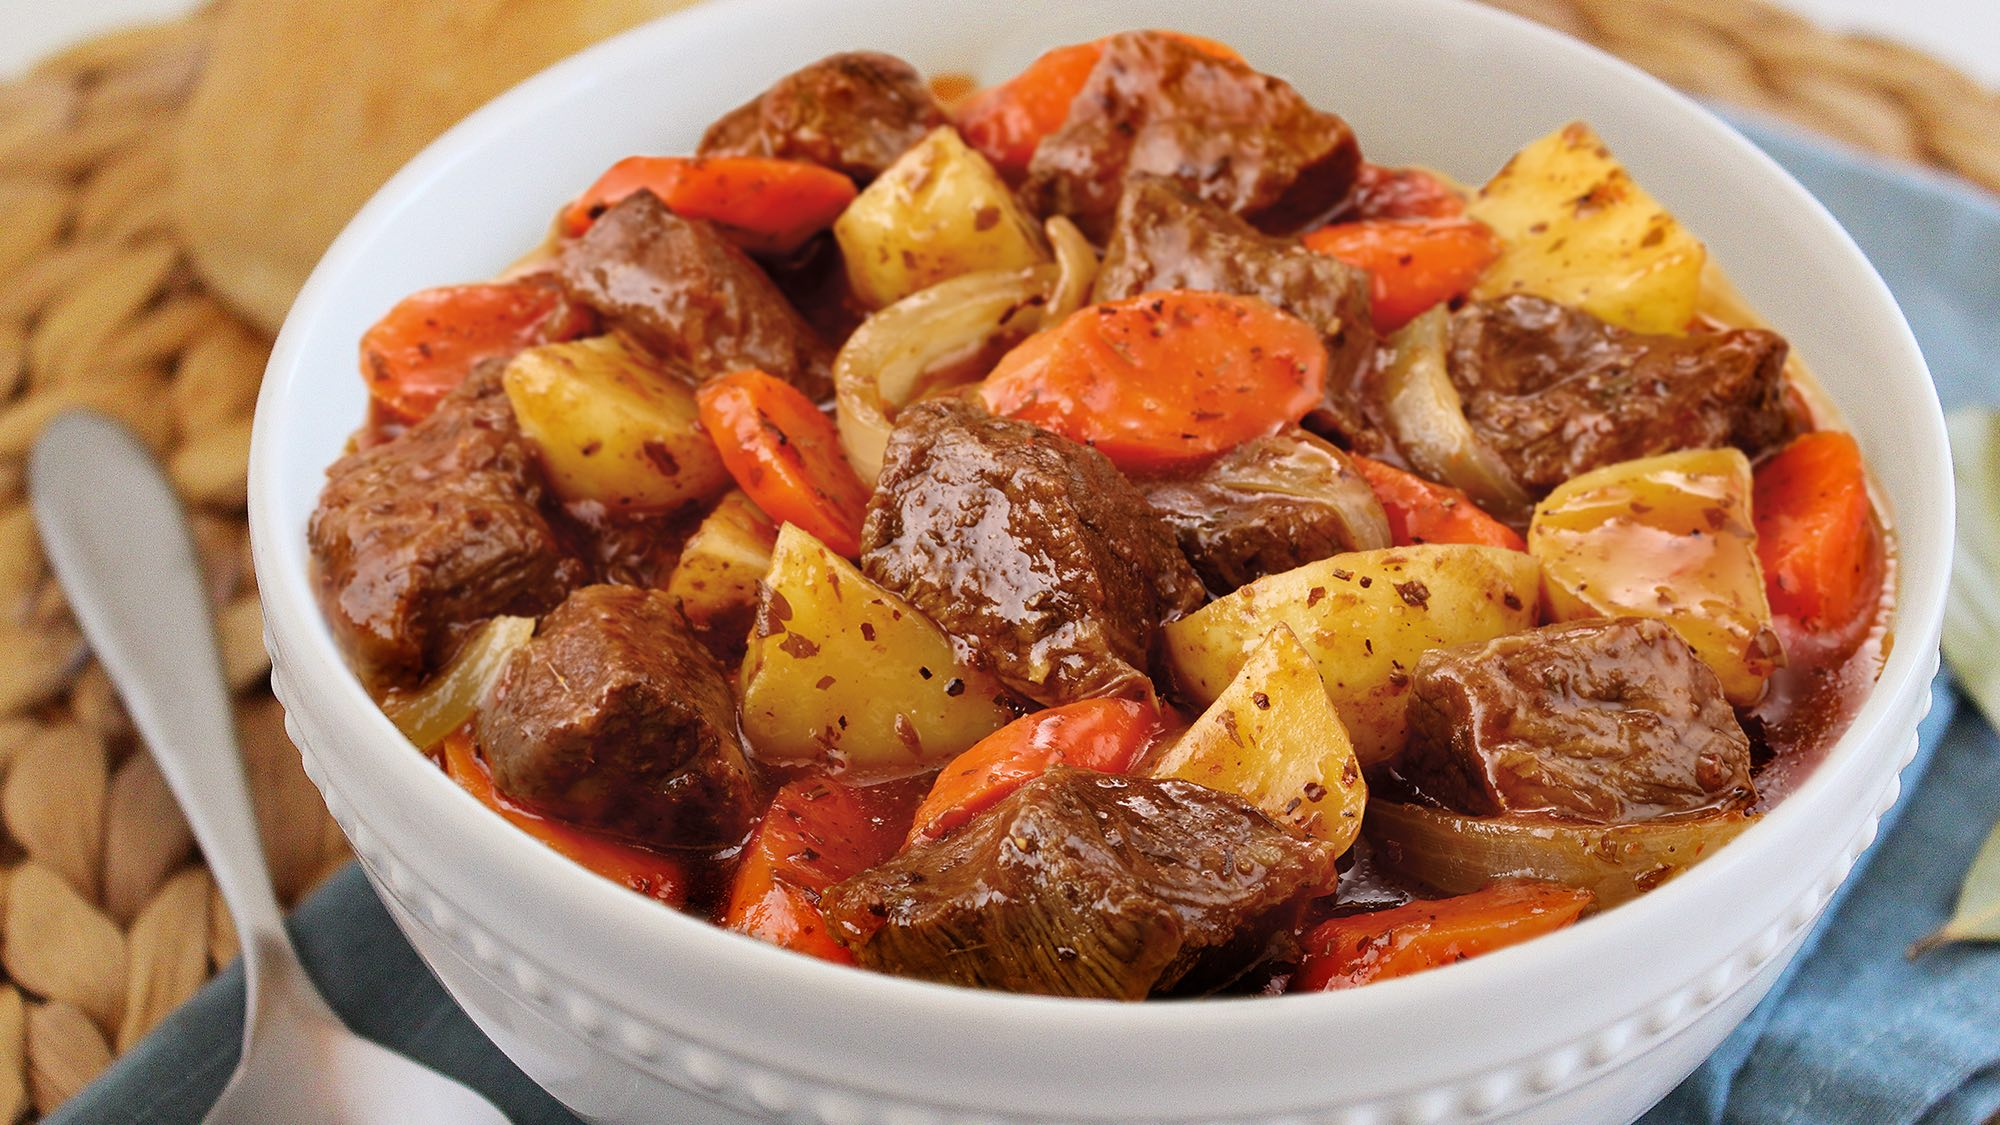 McCormick Slow Cooker Beef Stew with Herbs and Onion